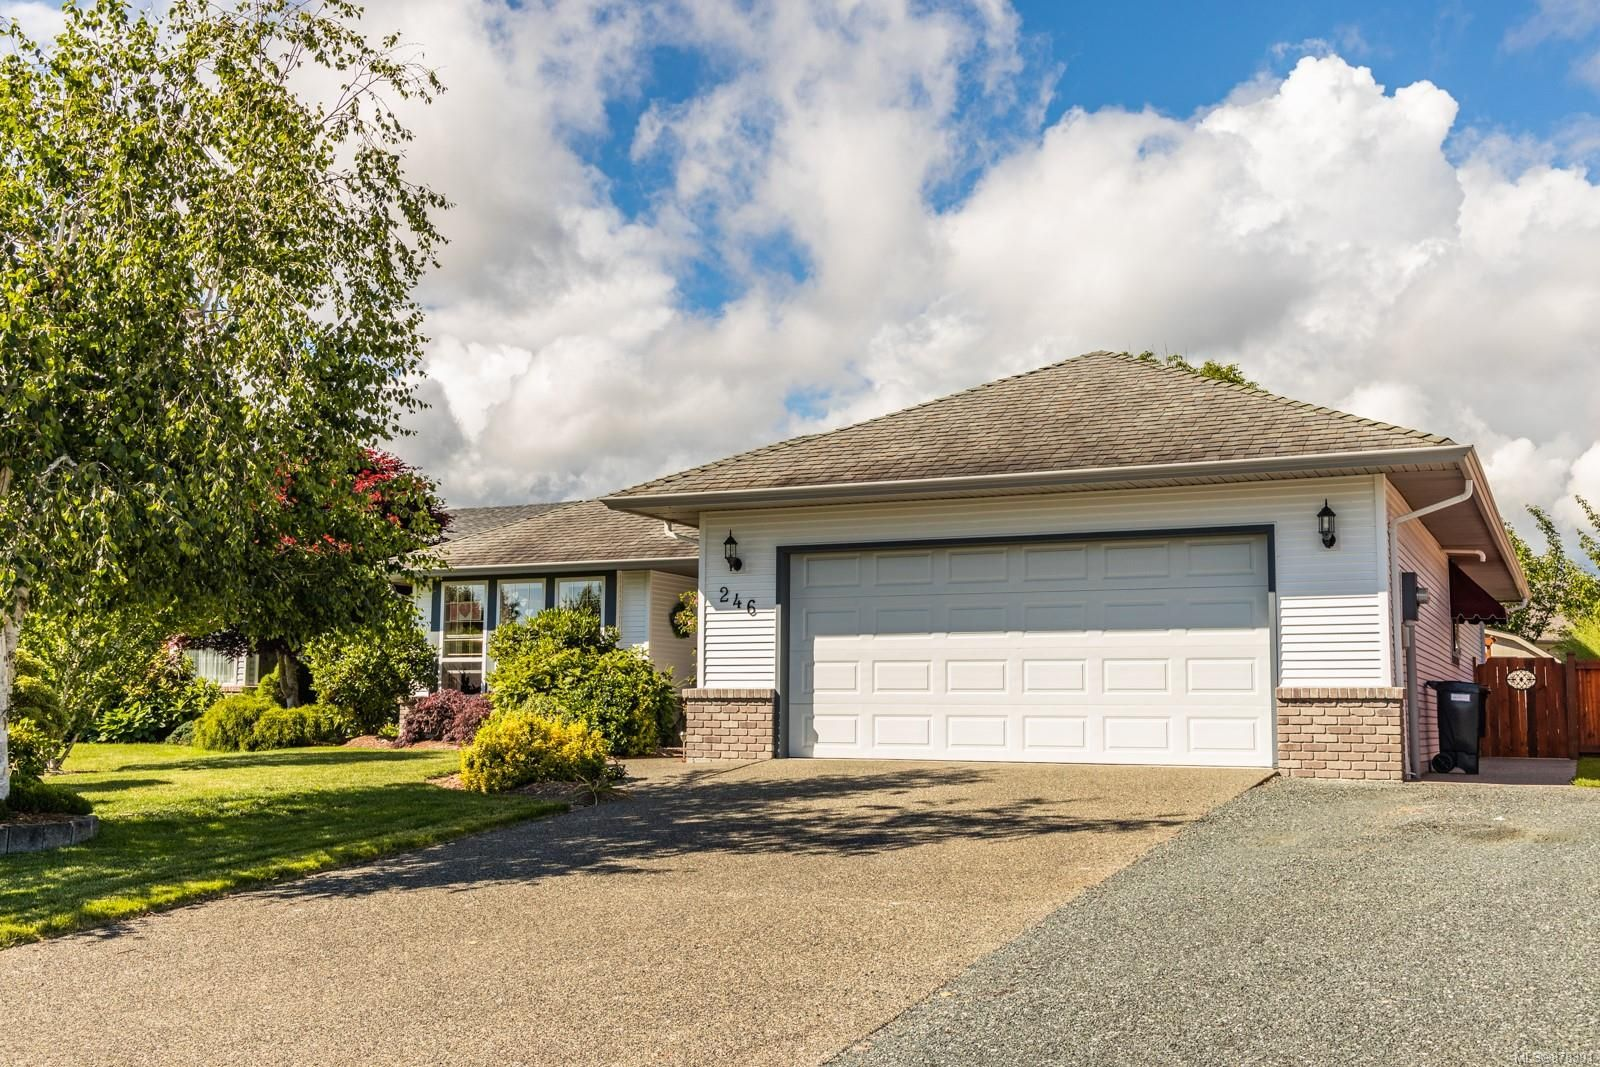 Main Photo: 246 Crabapple Cres in : PQ Parksville House for sale (Parksville/Qualicum)  : MLS®# 878391